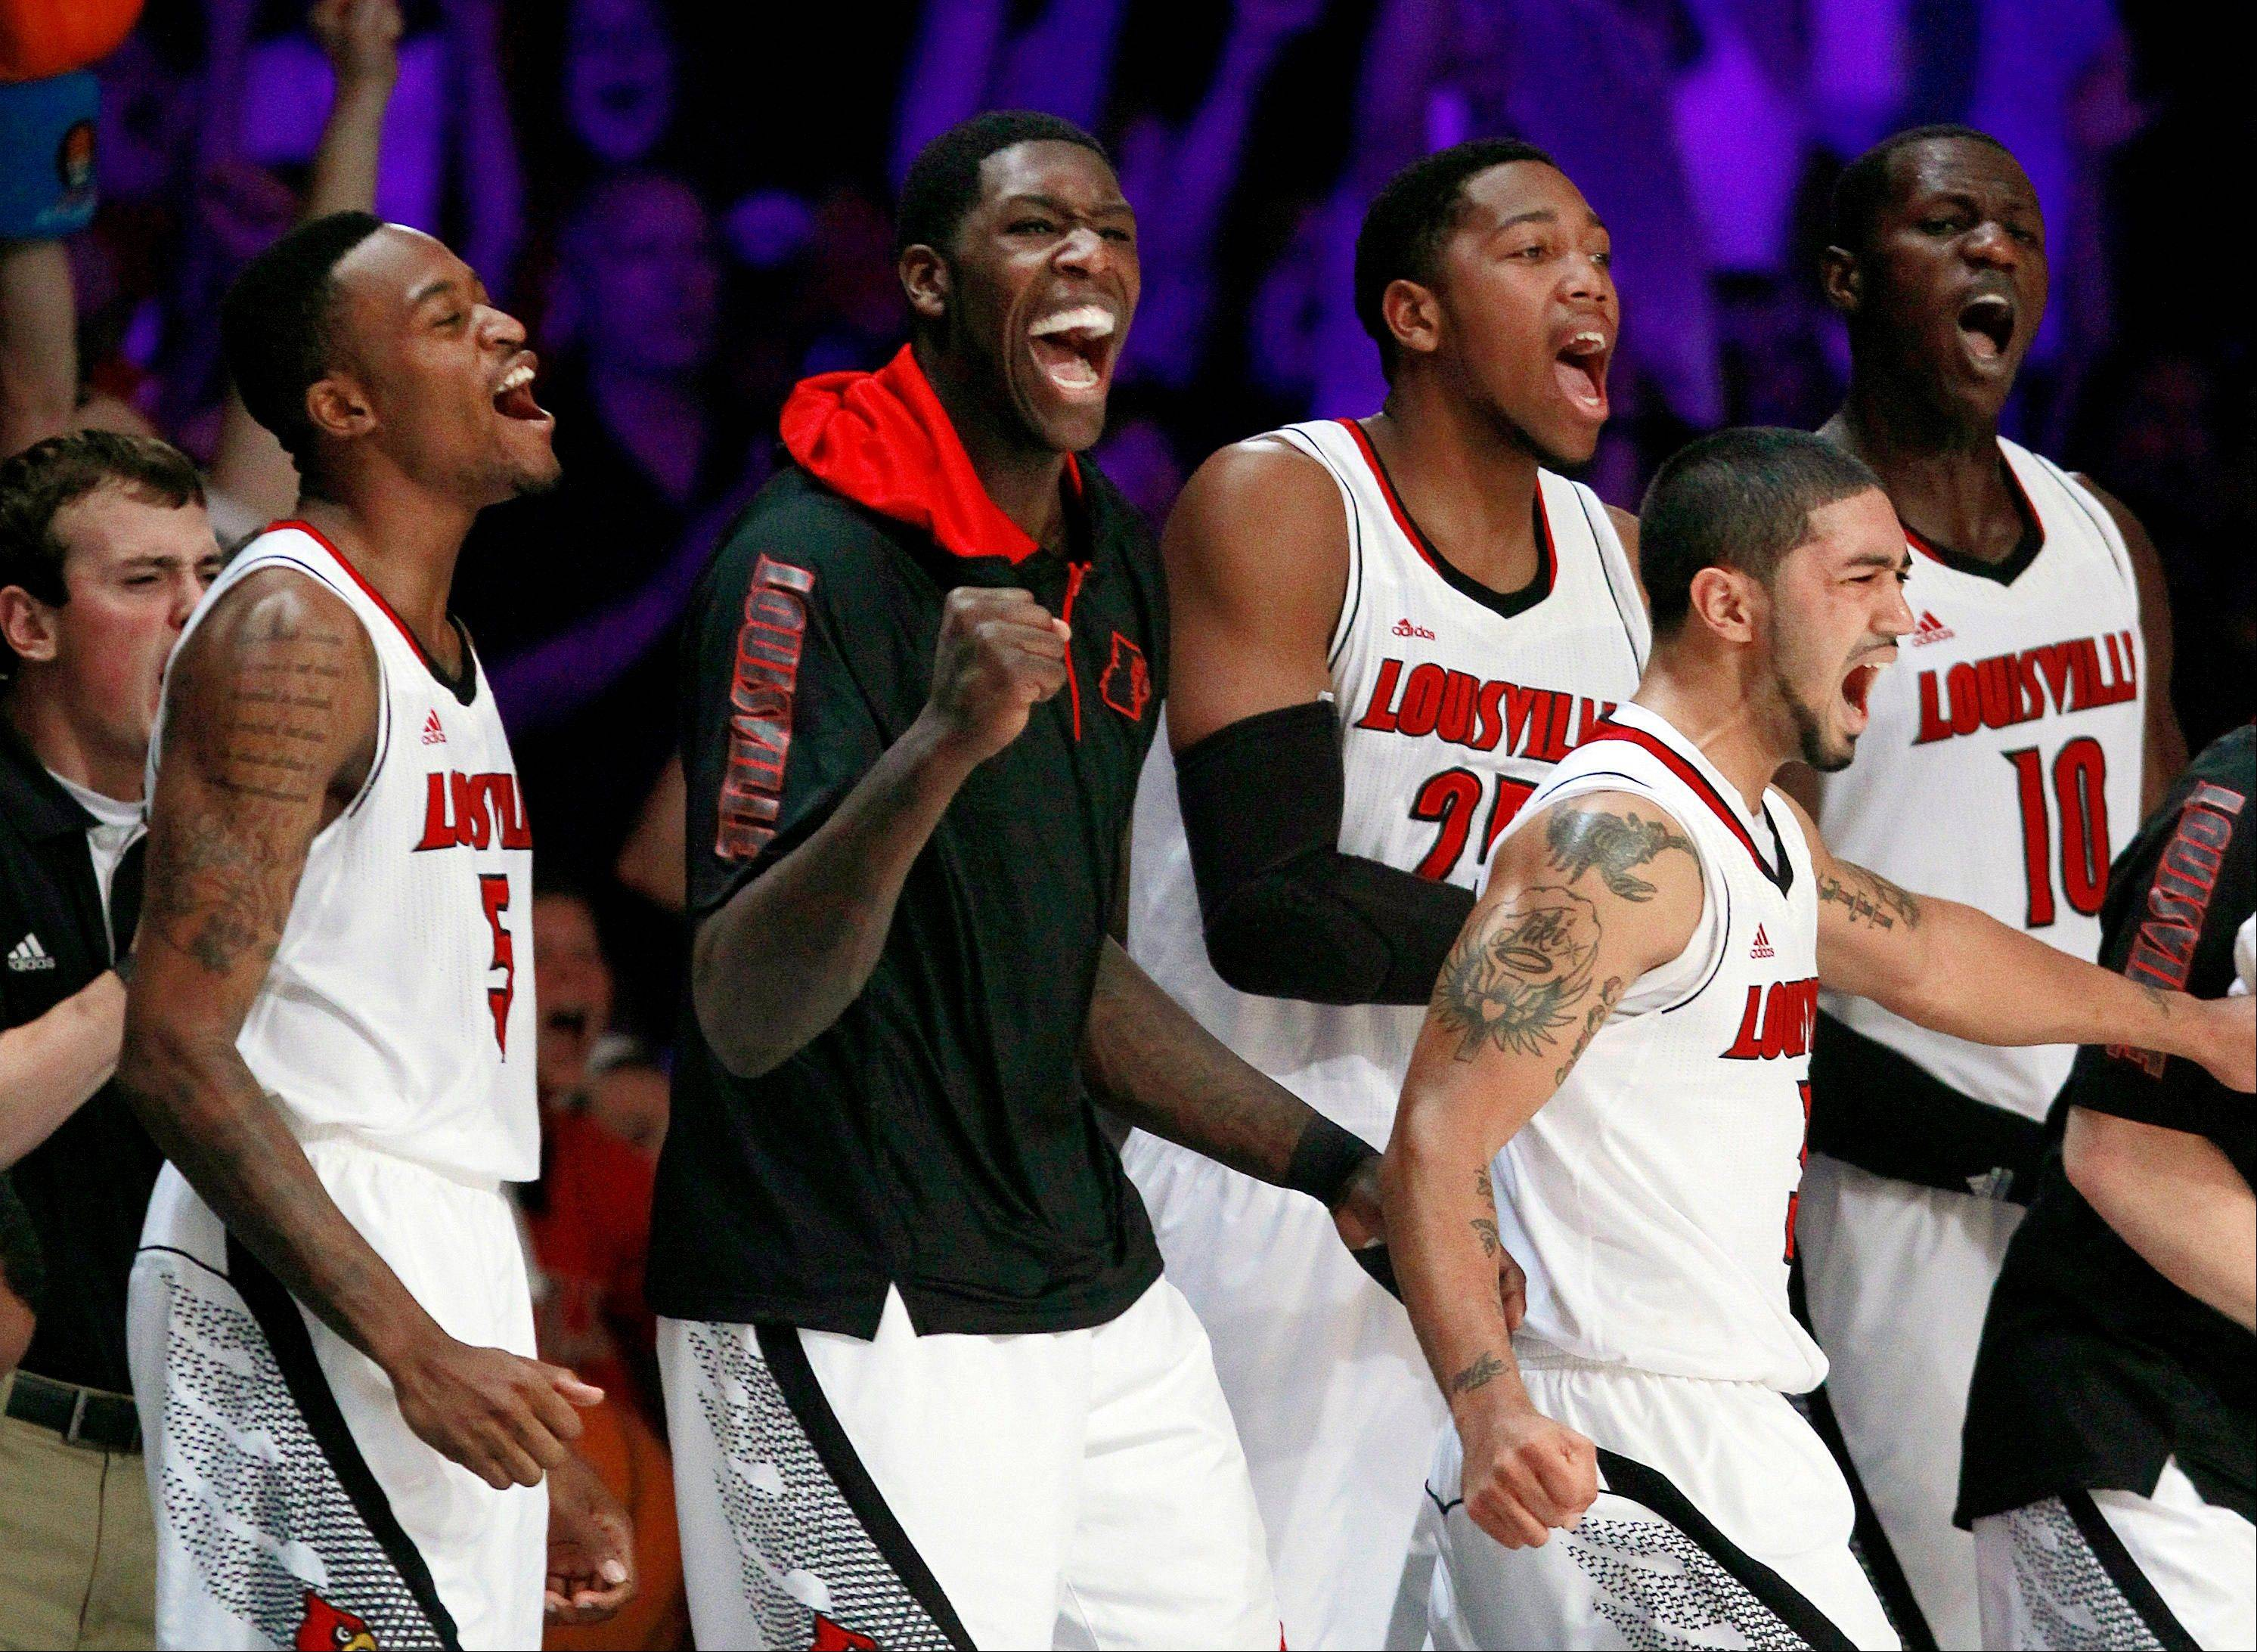 In this Nov. 23, 2012, file photo, Louisville's Kevin Ware (5), Montrezl Harrell (24), Peyton Siva, Zach Price (25) and Gorgui Dieng (10) react after a basket in the second half of an NCAA college basketball game in Paradise Island, Bahamas. The Cardinals have shown that they are comfortable being front-runners in their season-long quest to go farther than last year's Final Four appearance. Now, they enter the NCAA tournament as the overall No 1 seed.